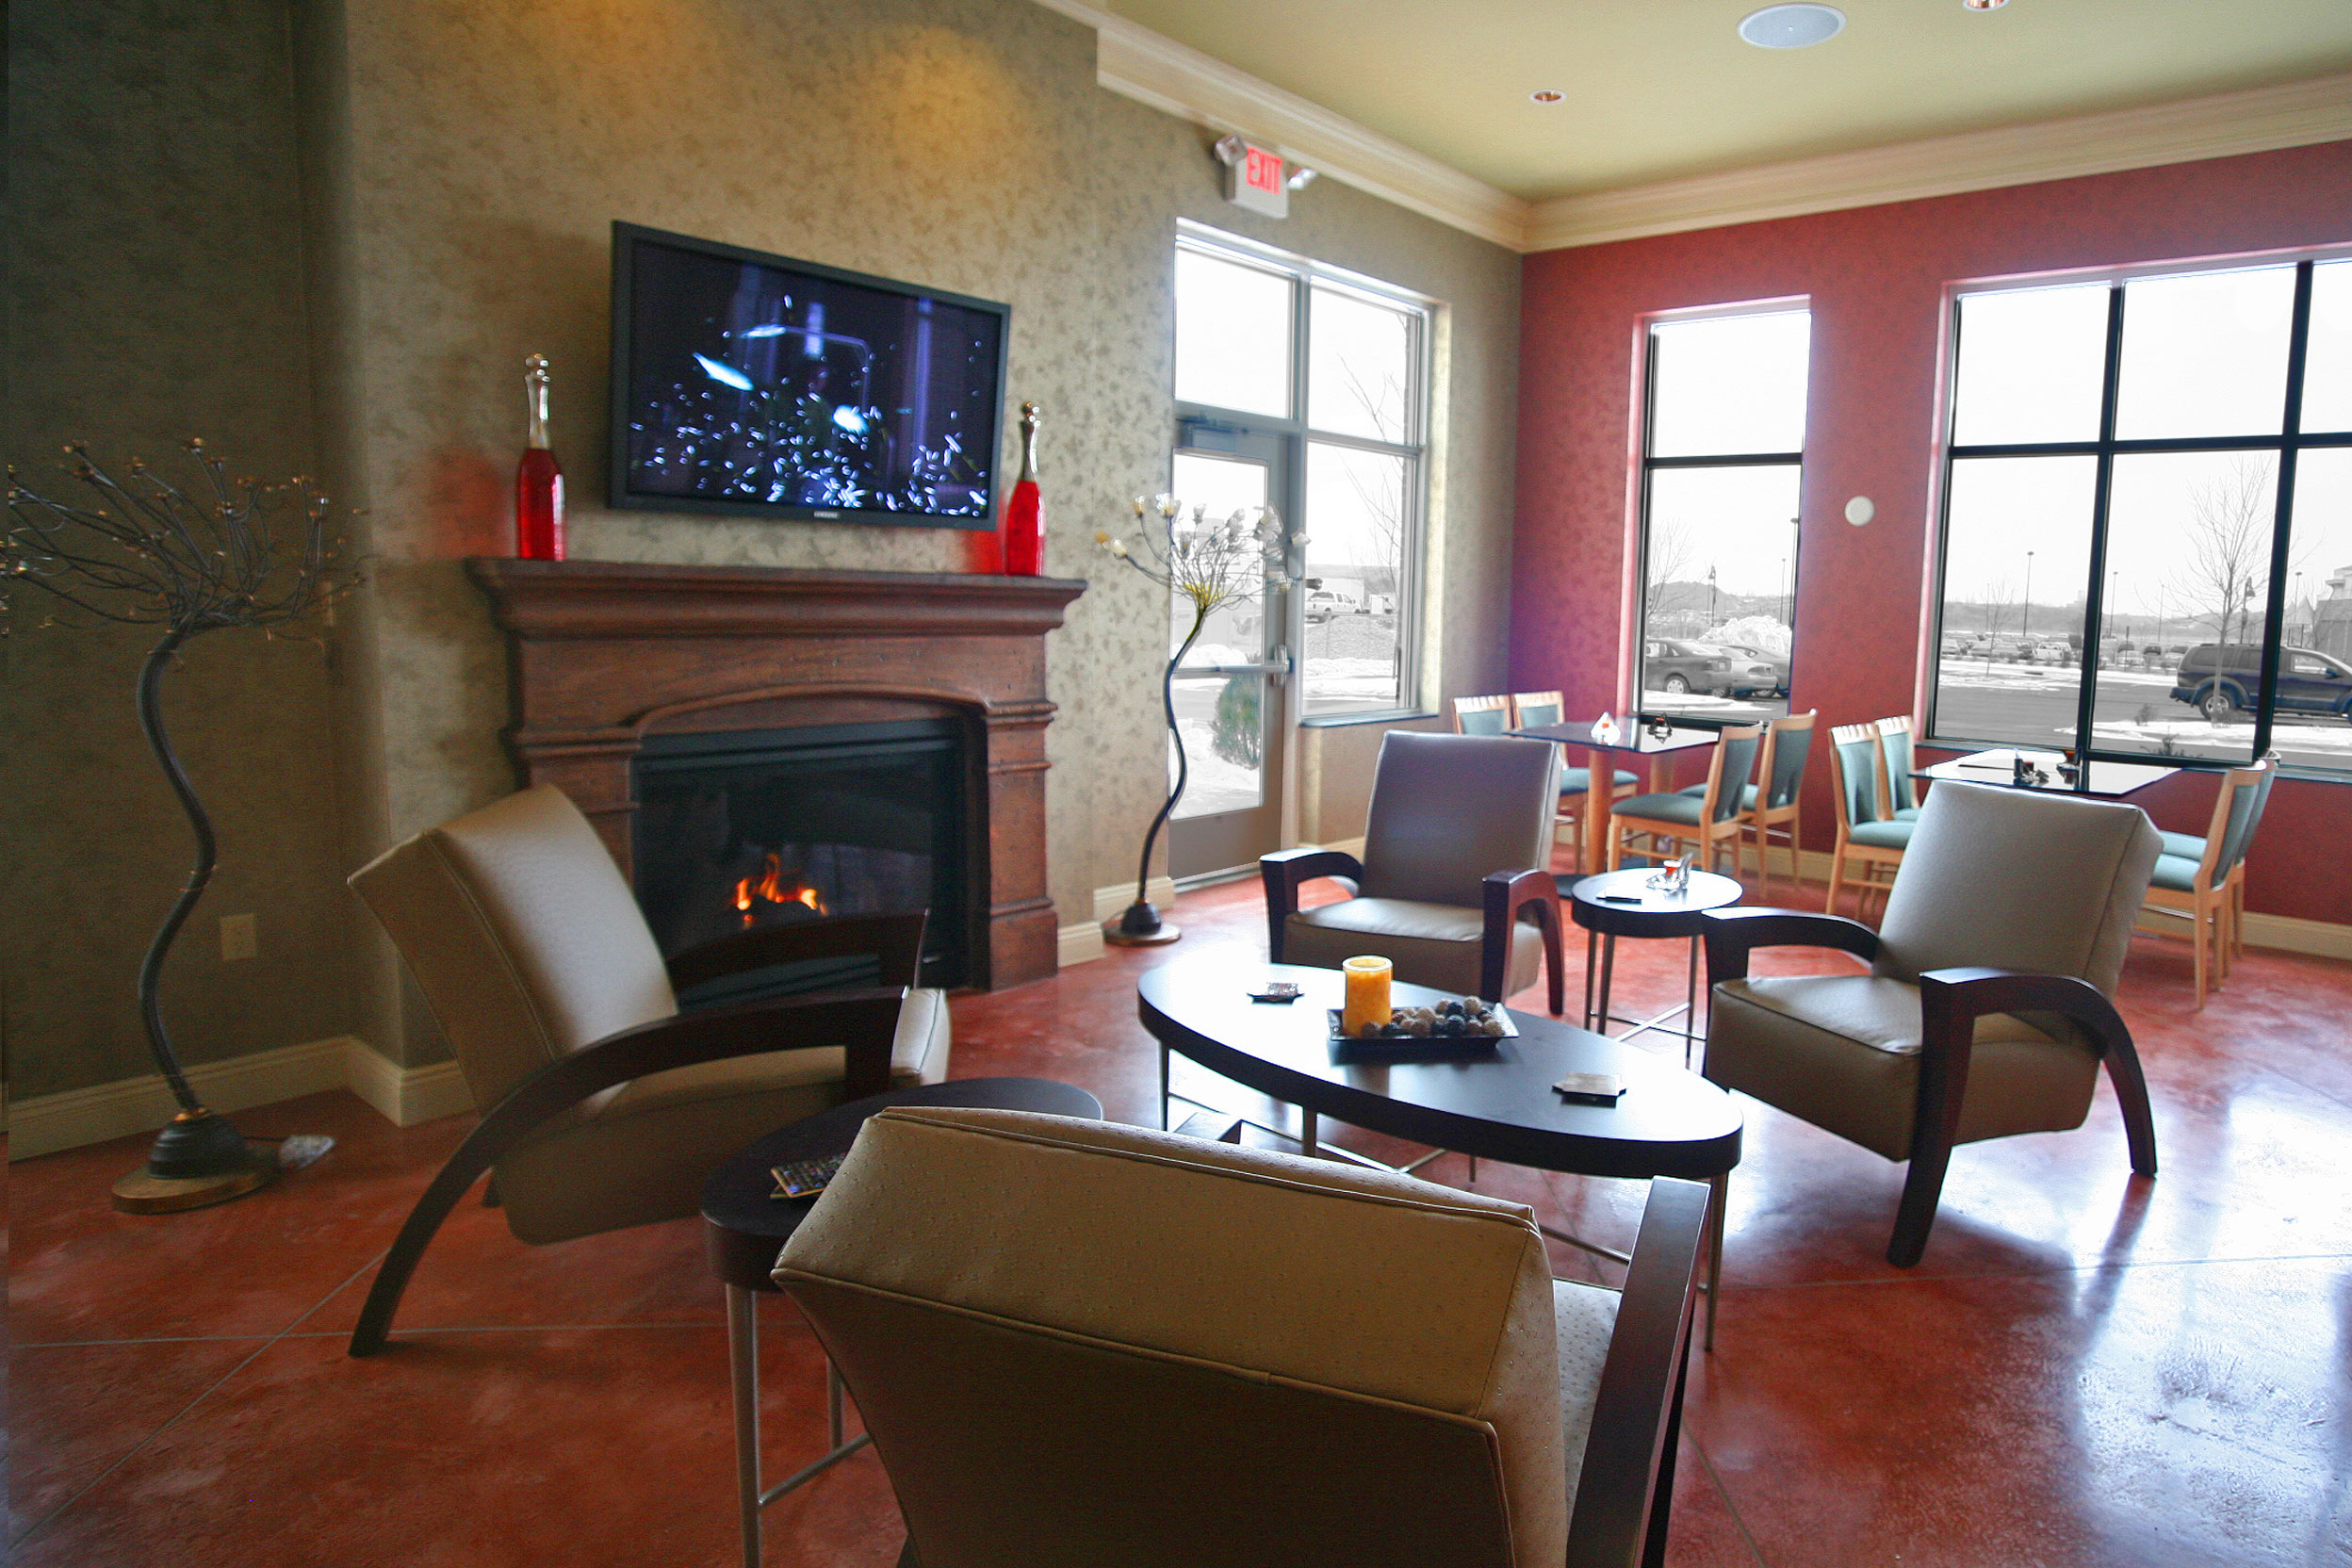 Seating area by a fireplace in the Holiday Inn in Maple Grove, MN